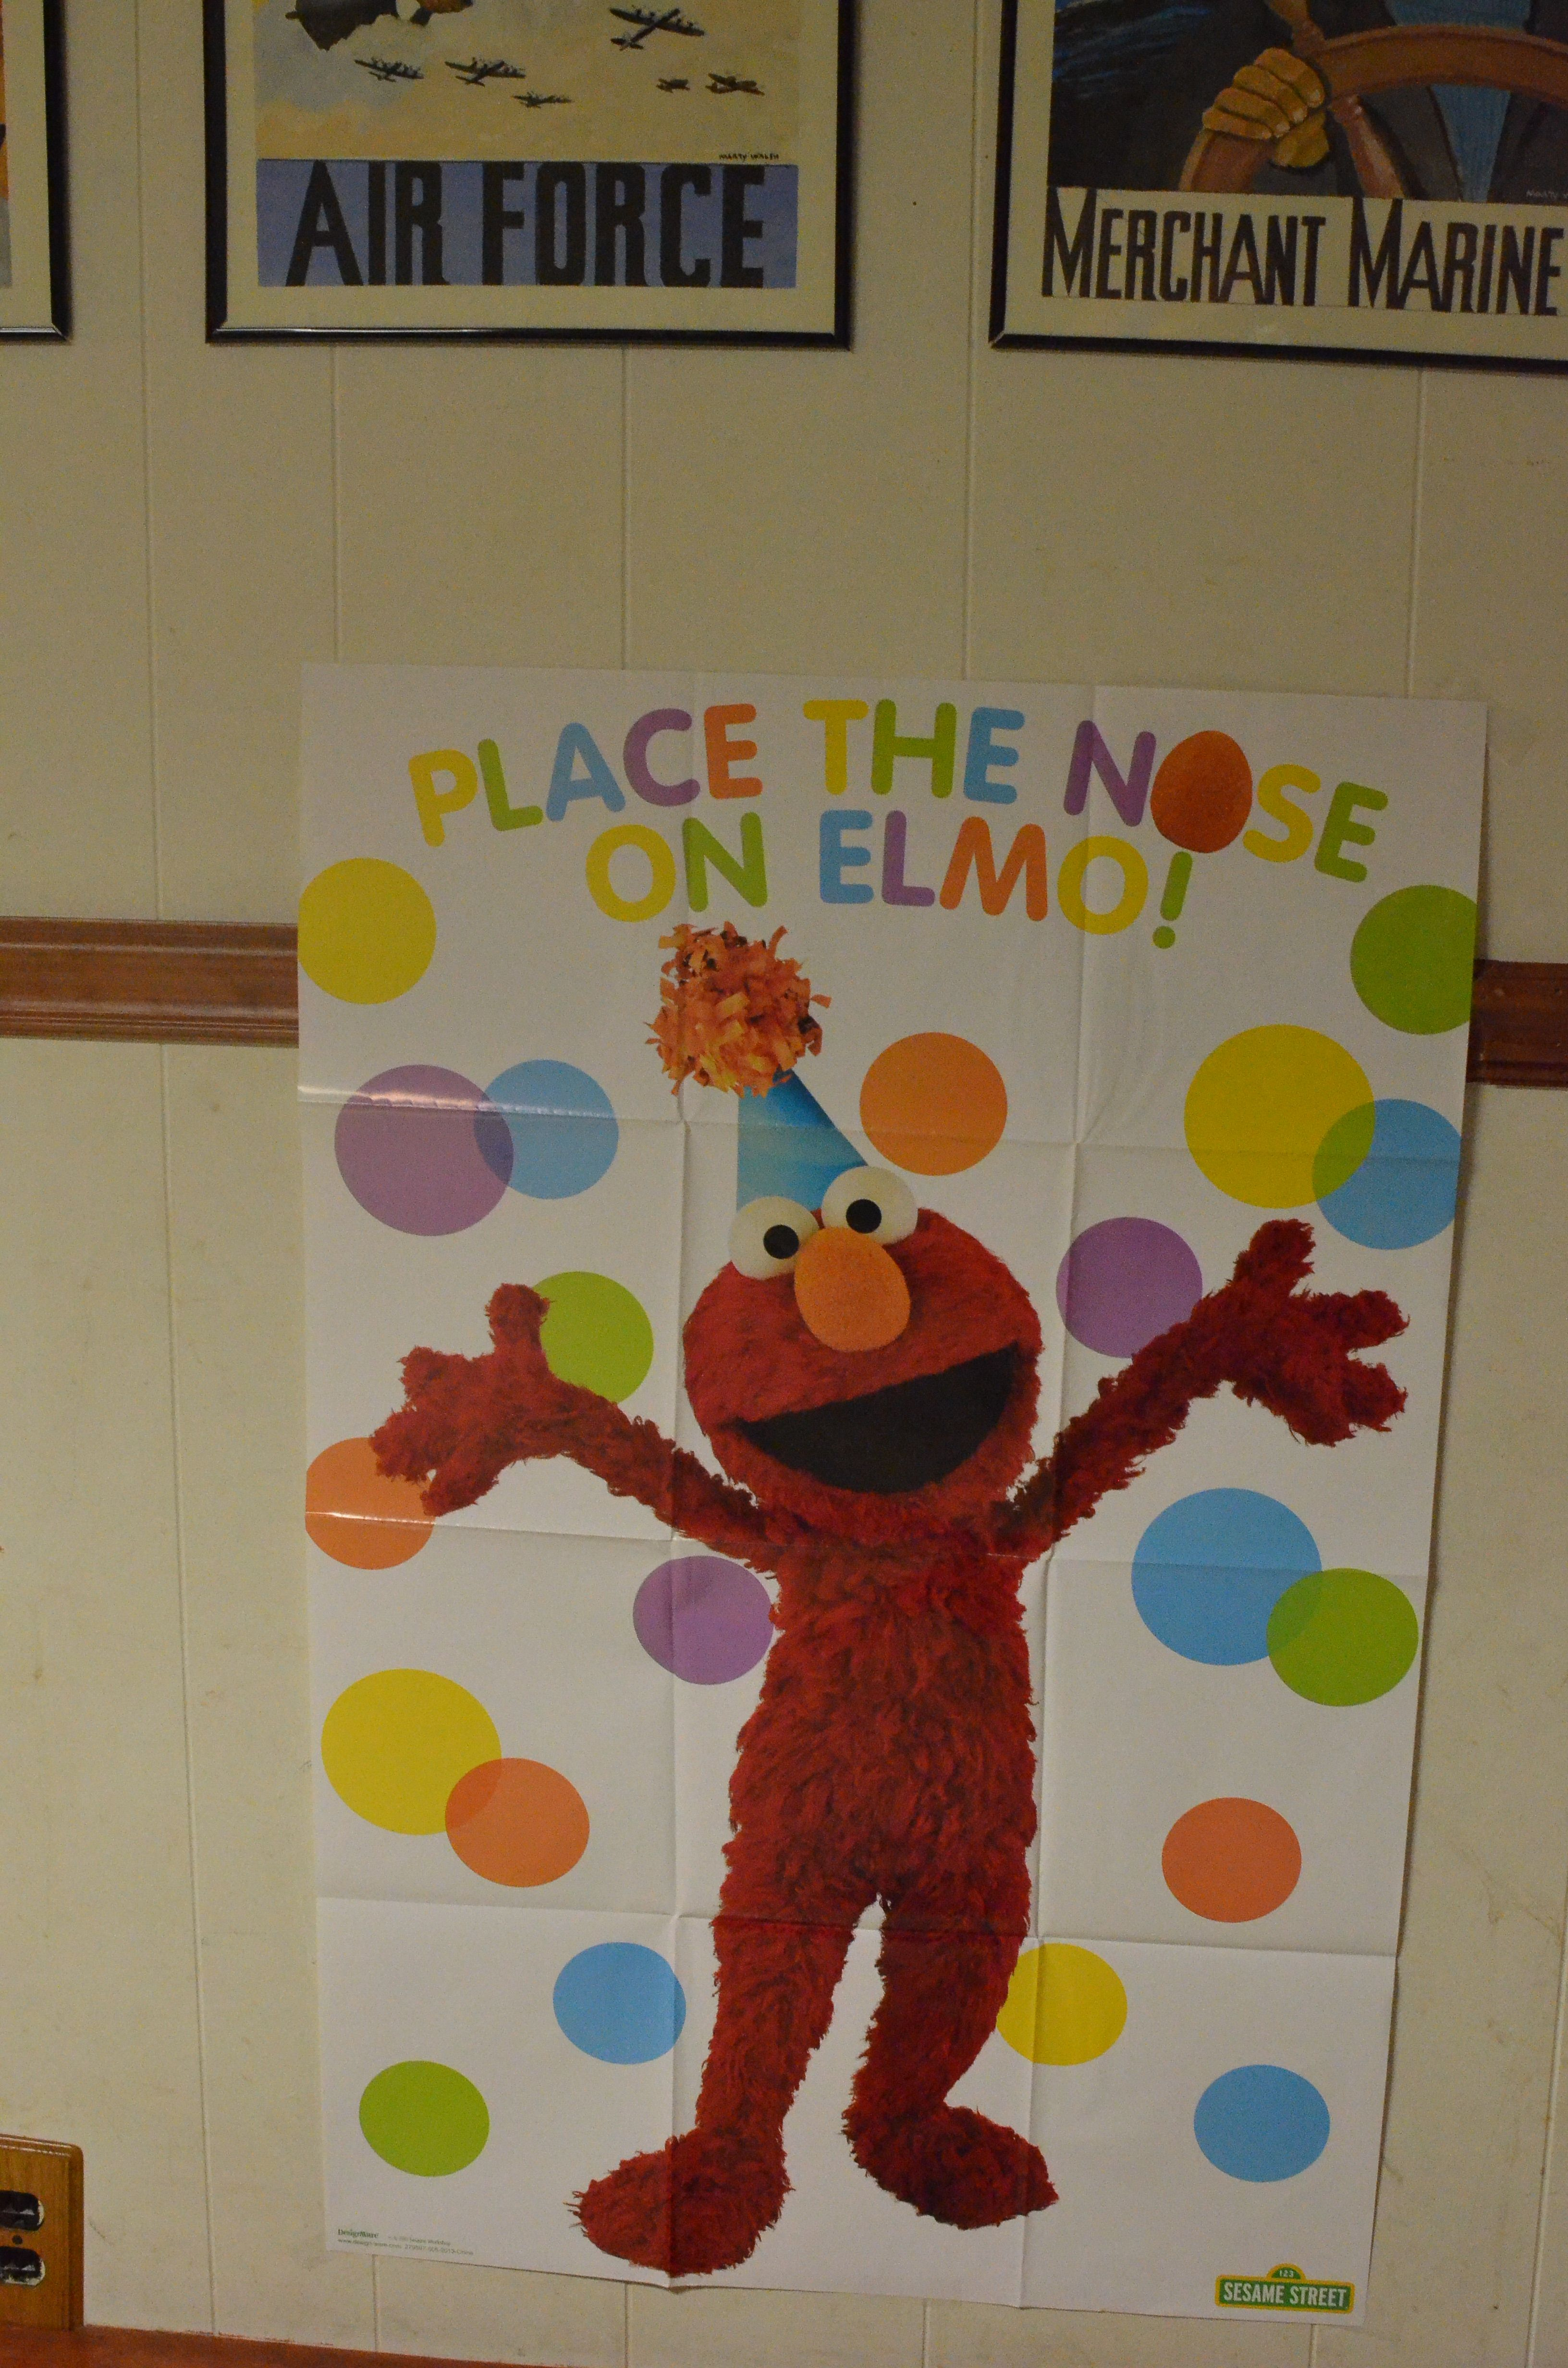 Pin The Nose On Elmo Game Purchased At Party City Note The Game Only Comes Wit Elmo Birthday Party Sesame Street Birthday Party Sesame Street Party Supplies